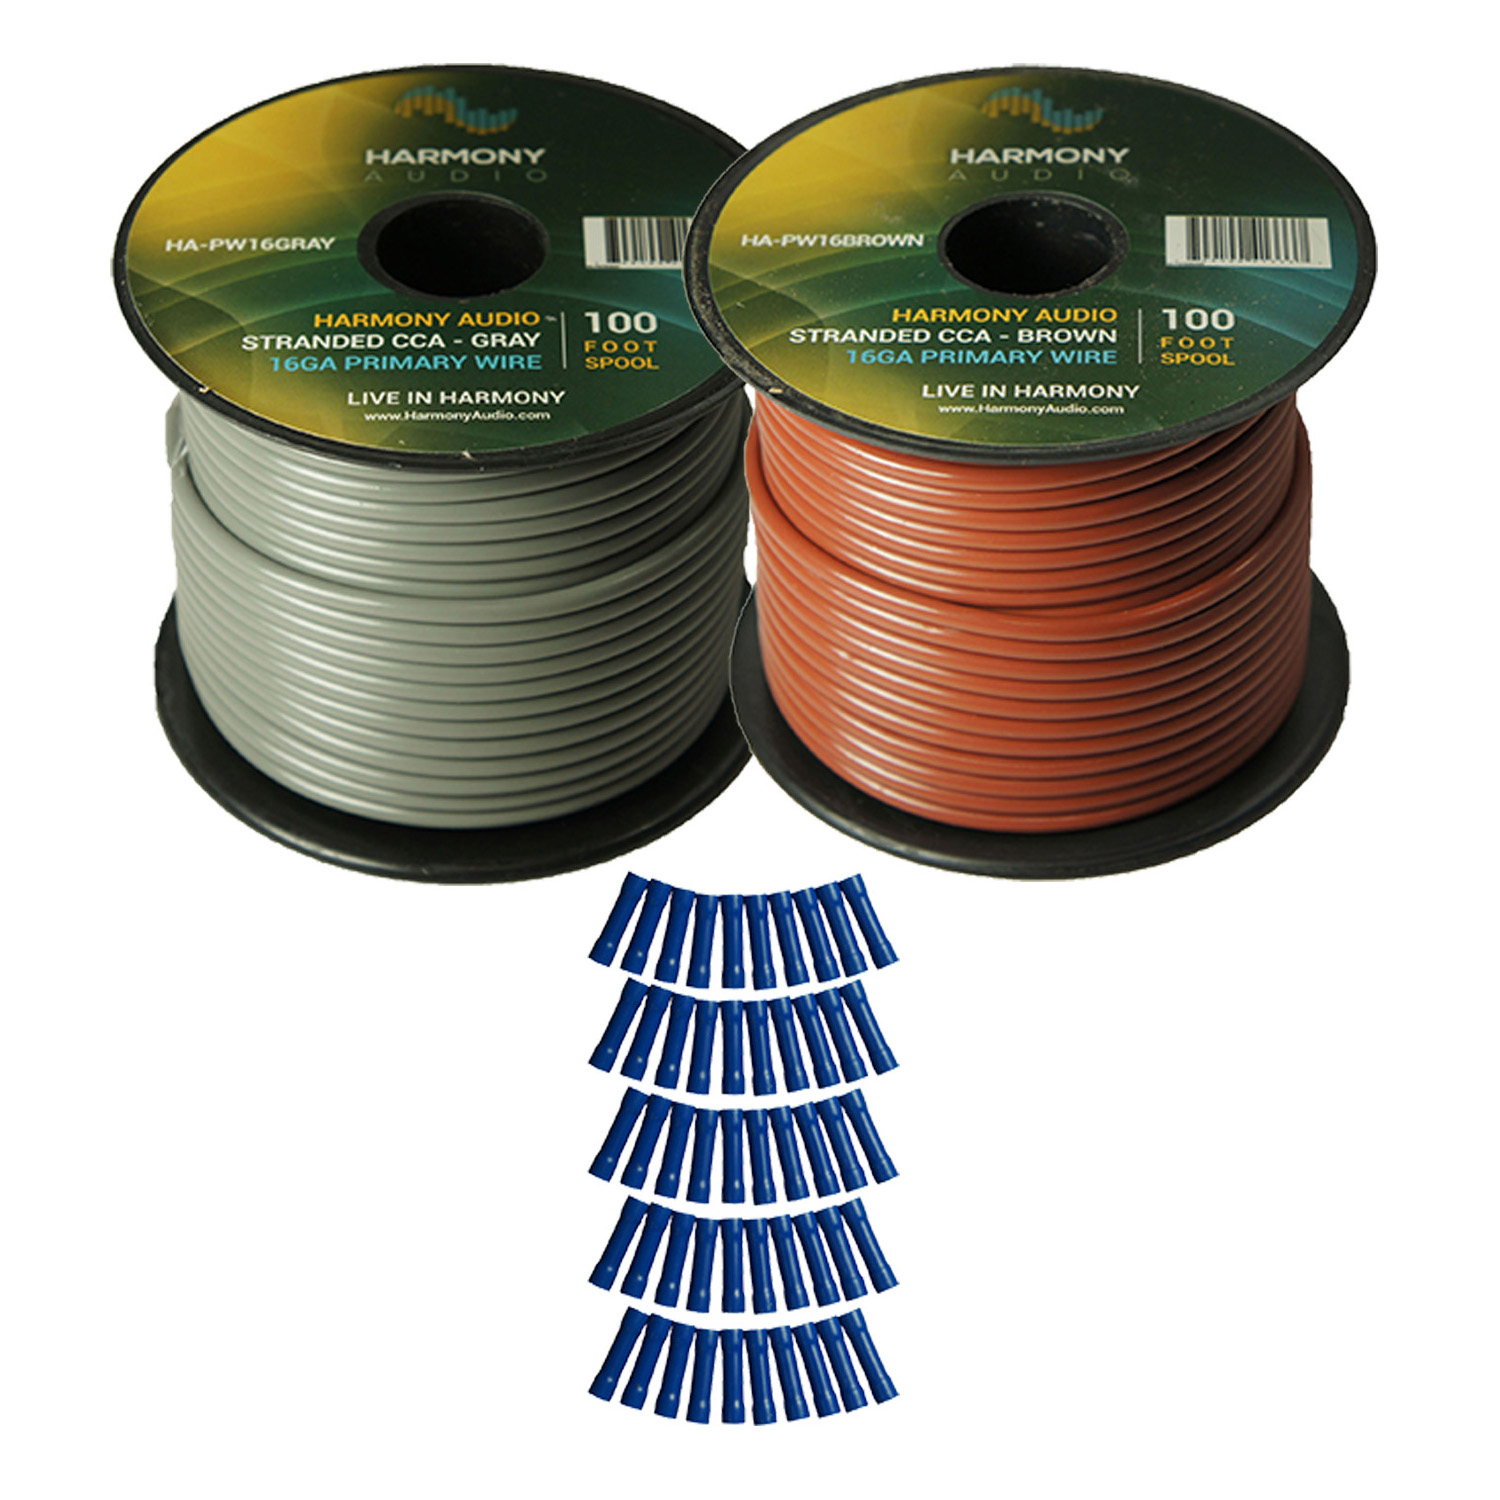 Harmony Audio Primary Single Conductor 16 Gauge Power or Ground Wire - 2 Rolls - 200 Feet - Gray & Brown for Car Audio / Trailer / Model Train / Remote